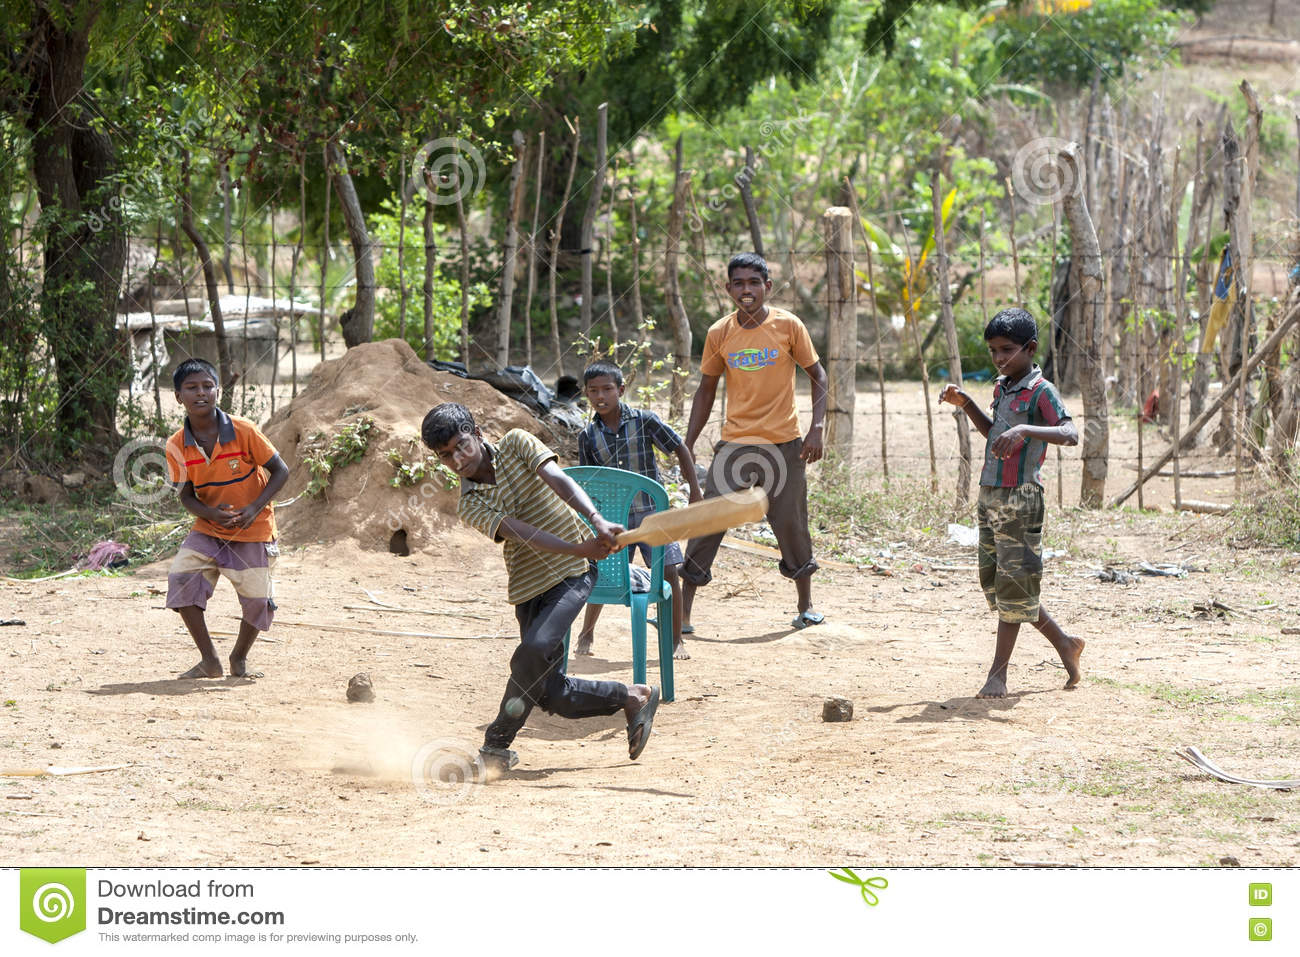 Young cricketers in Sri Lanka.